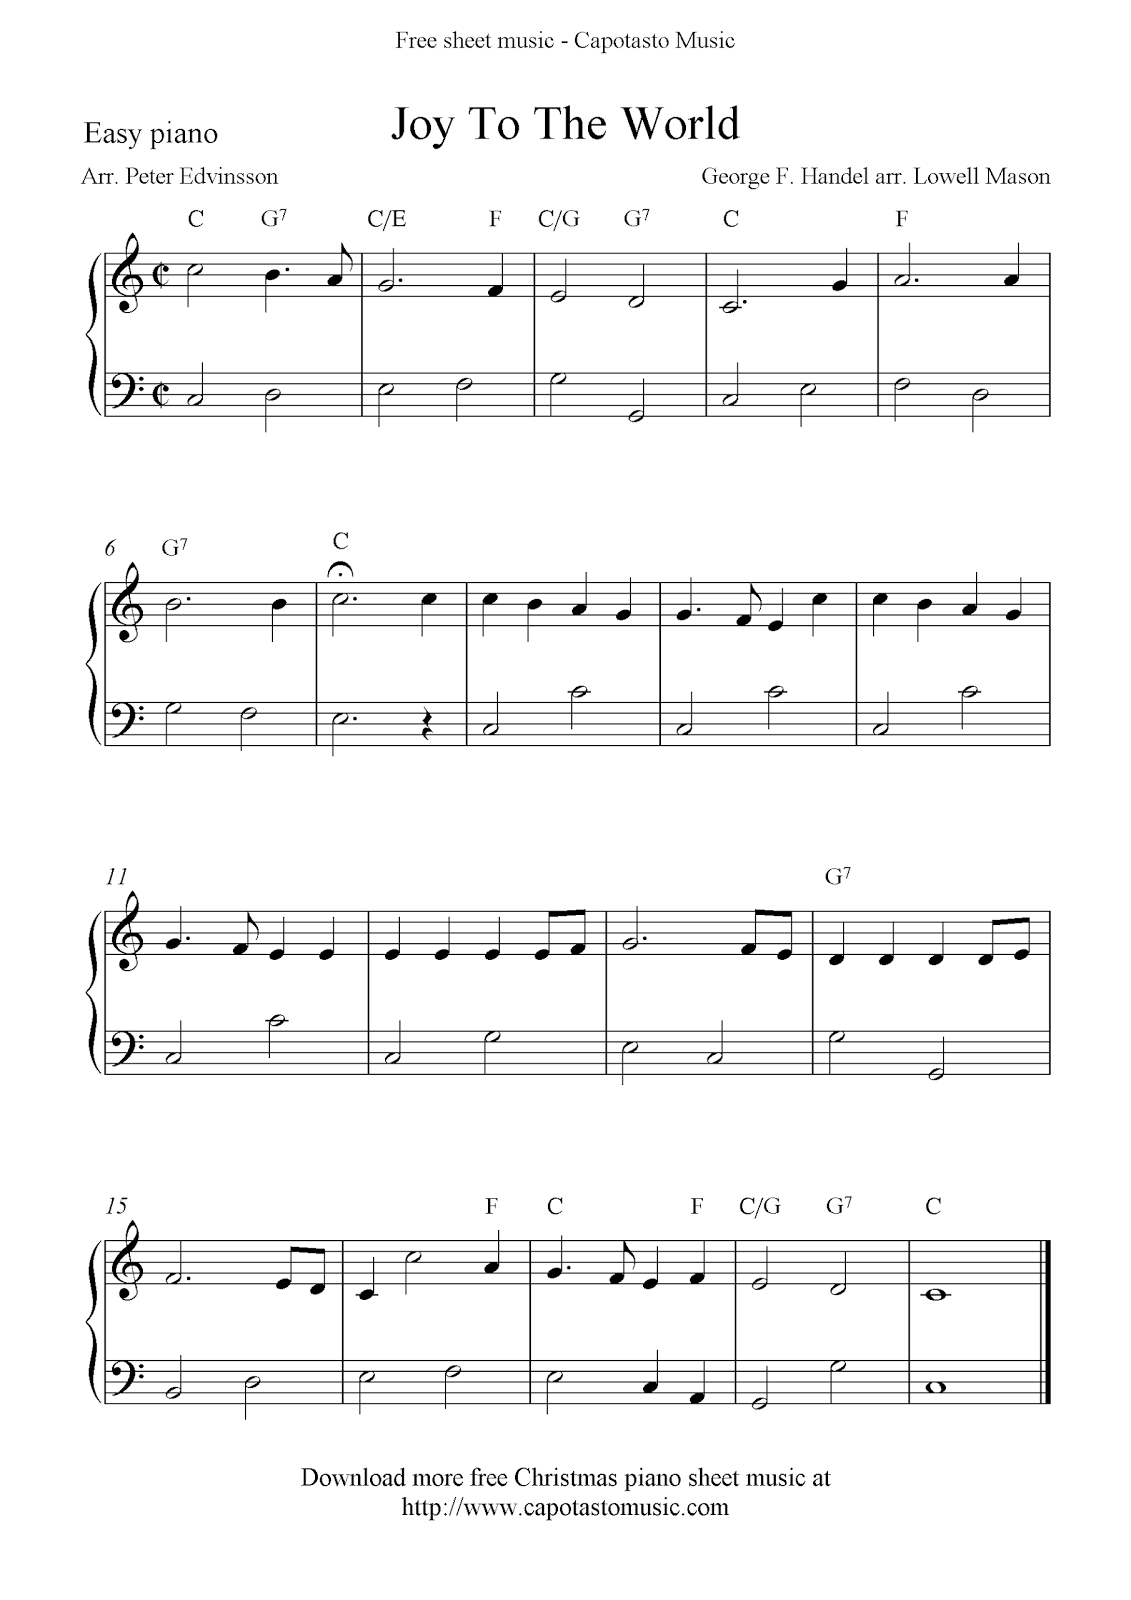 free sheet music scores easy free christmas piano sheet music notes joy to the - Free Christmas Piano Sheet Music